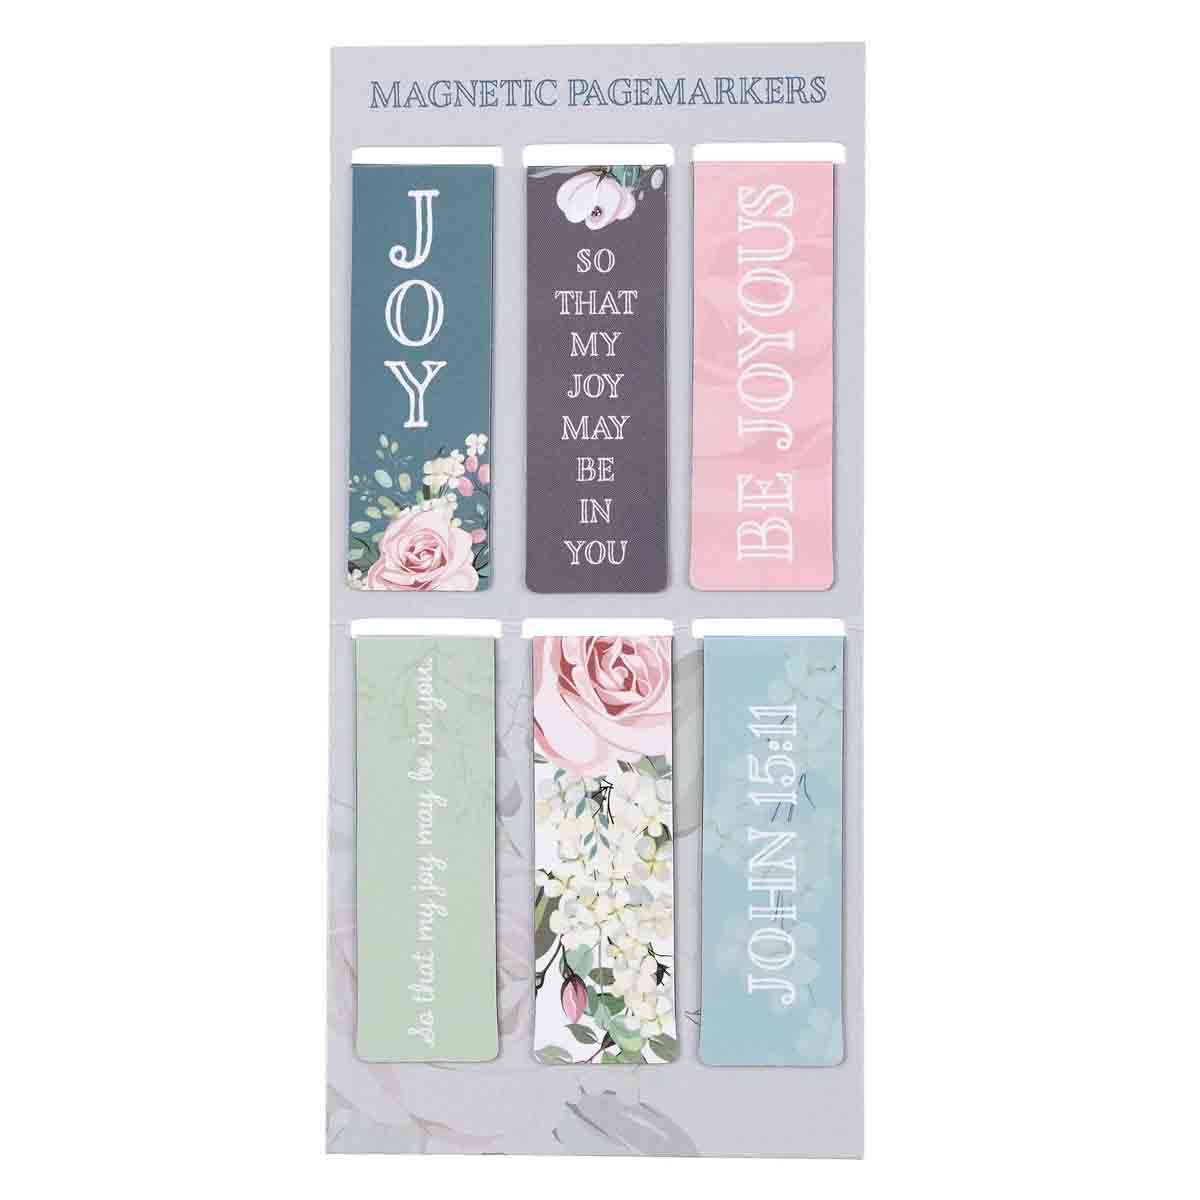 That Joy May Be In You (Magnetic Pagemarkers)